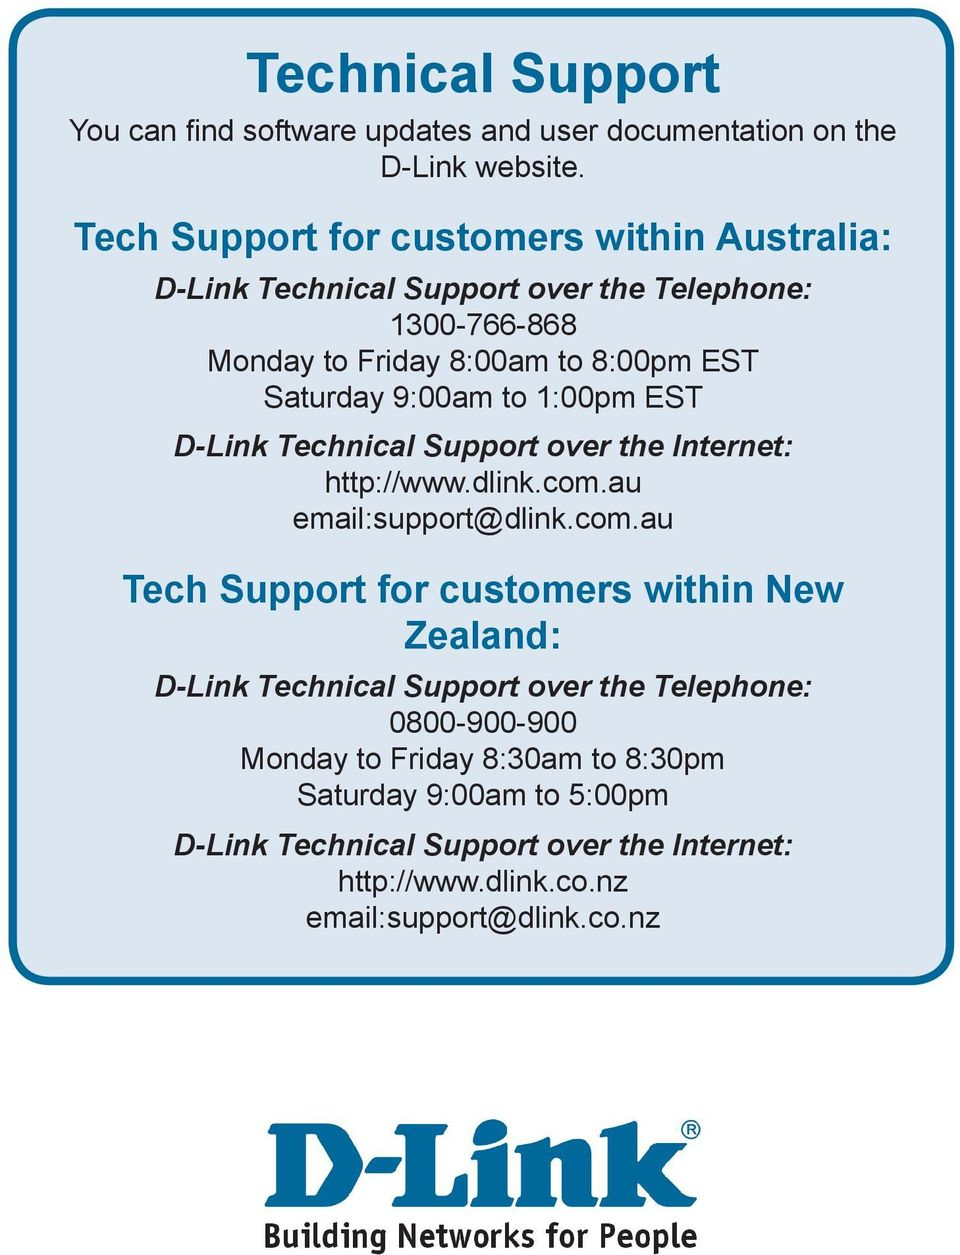 9:00am to 1:00pm EST D-Link Technical Support over the Internet: http://www.dlink.com.